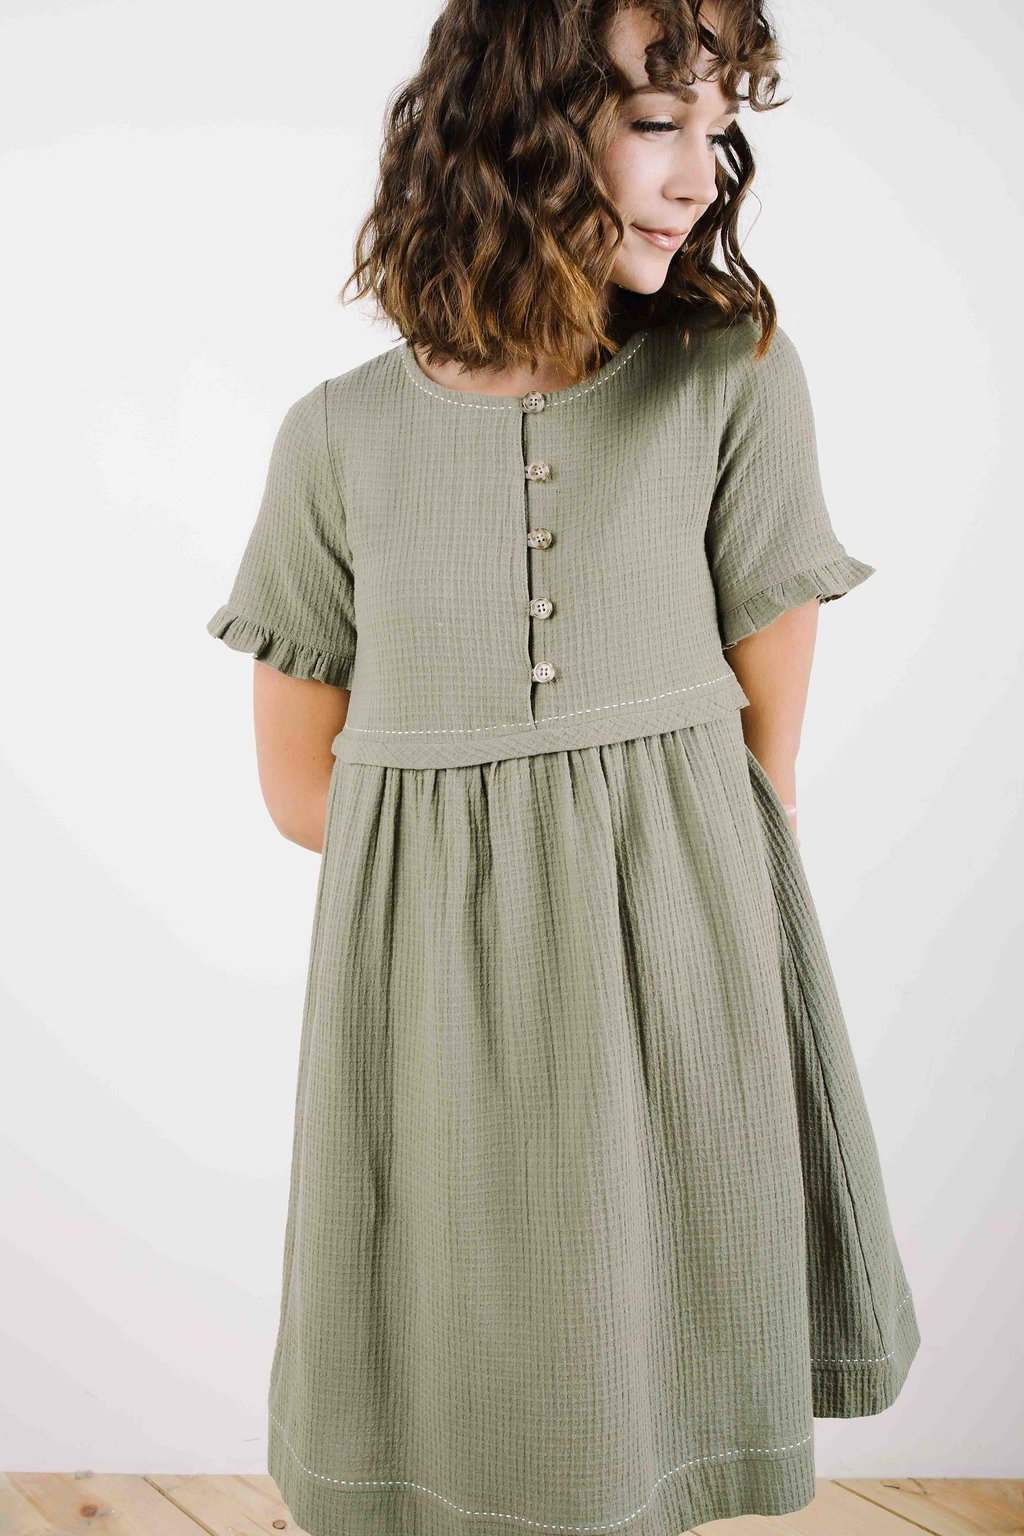 1a68a489 Peasant Dress in Olive Green in 2019 | Fashion Ideas | Dresses ...